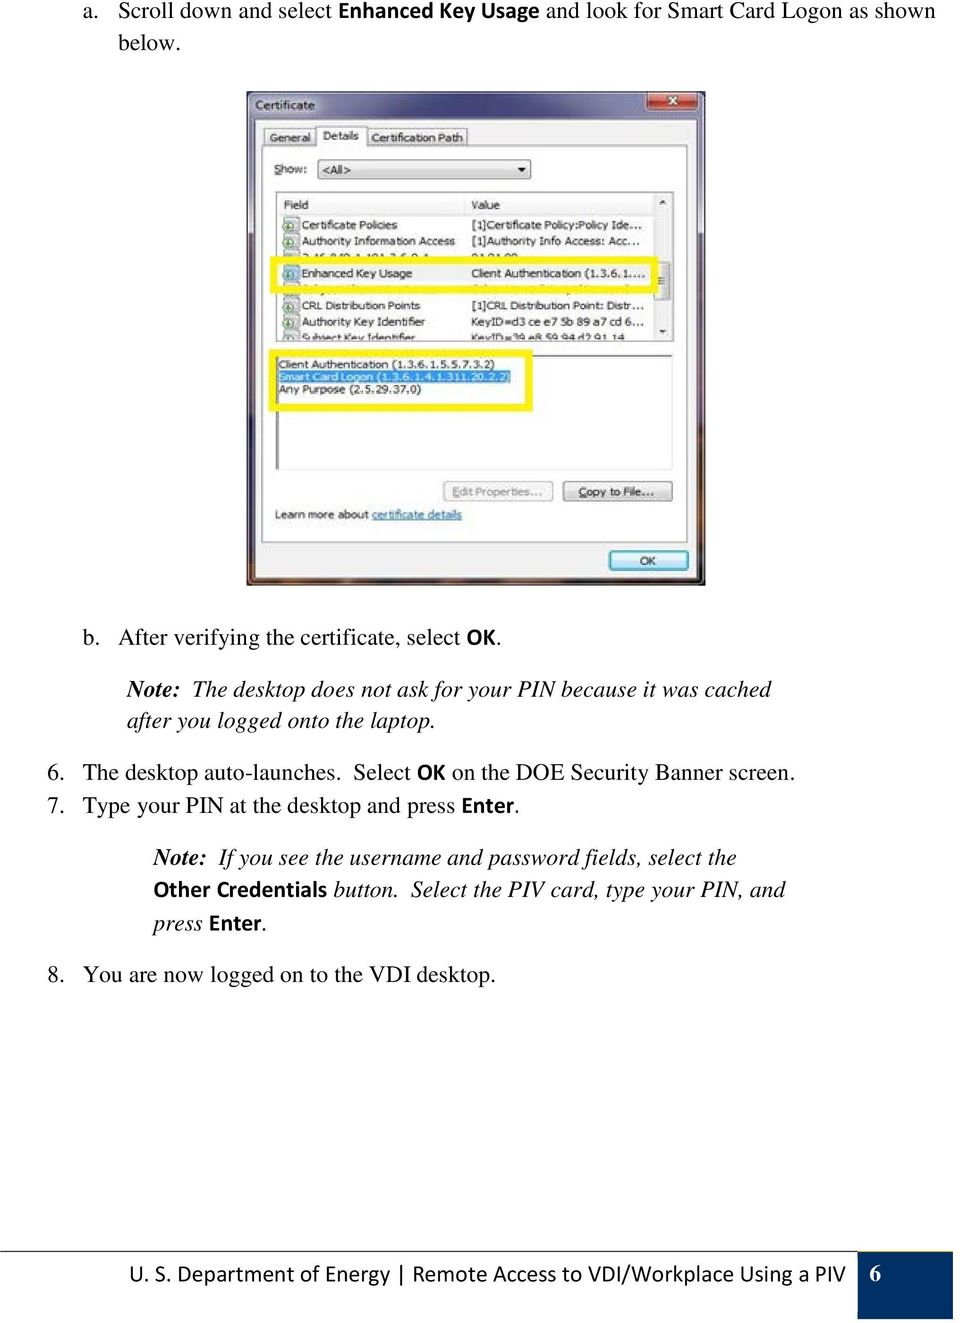 User Guide Remote Access to VDI/Workplace Using PIV - PDF